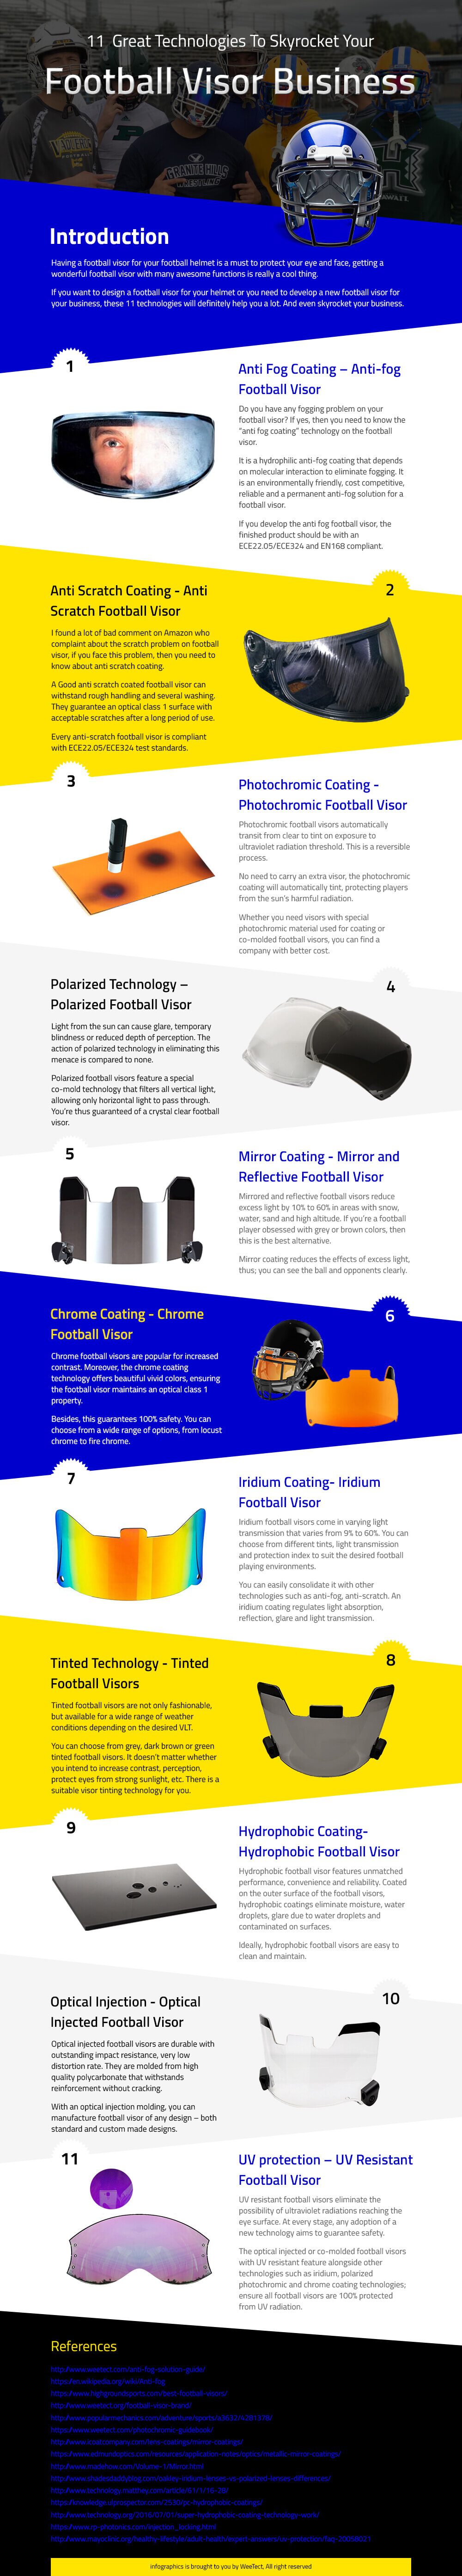 New-Gen Football Visors: 11 Great Technologies - Infographic